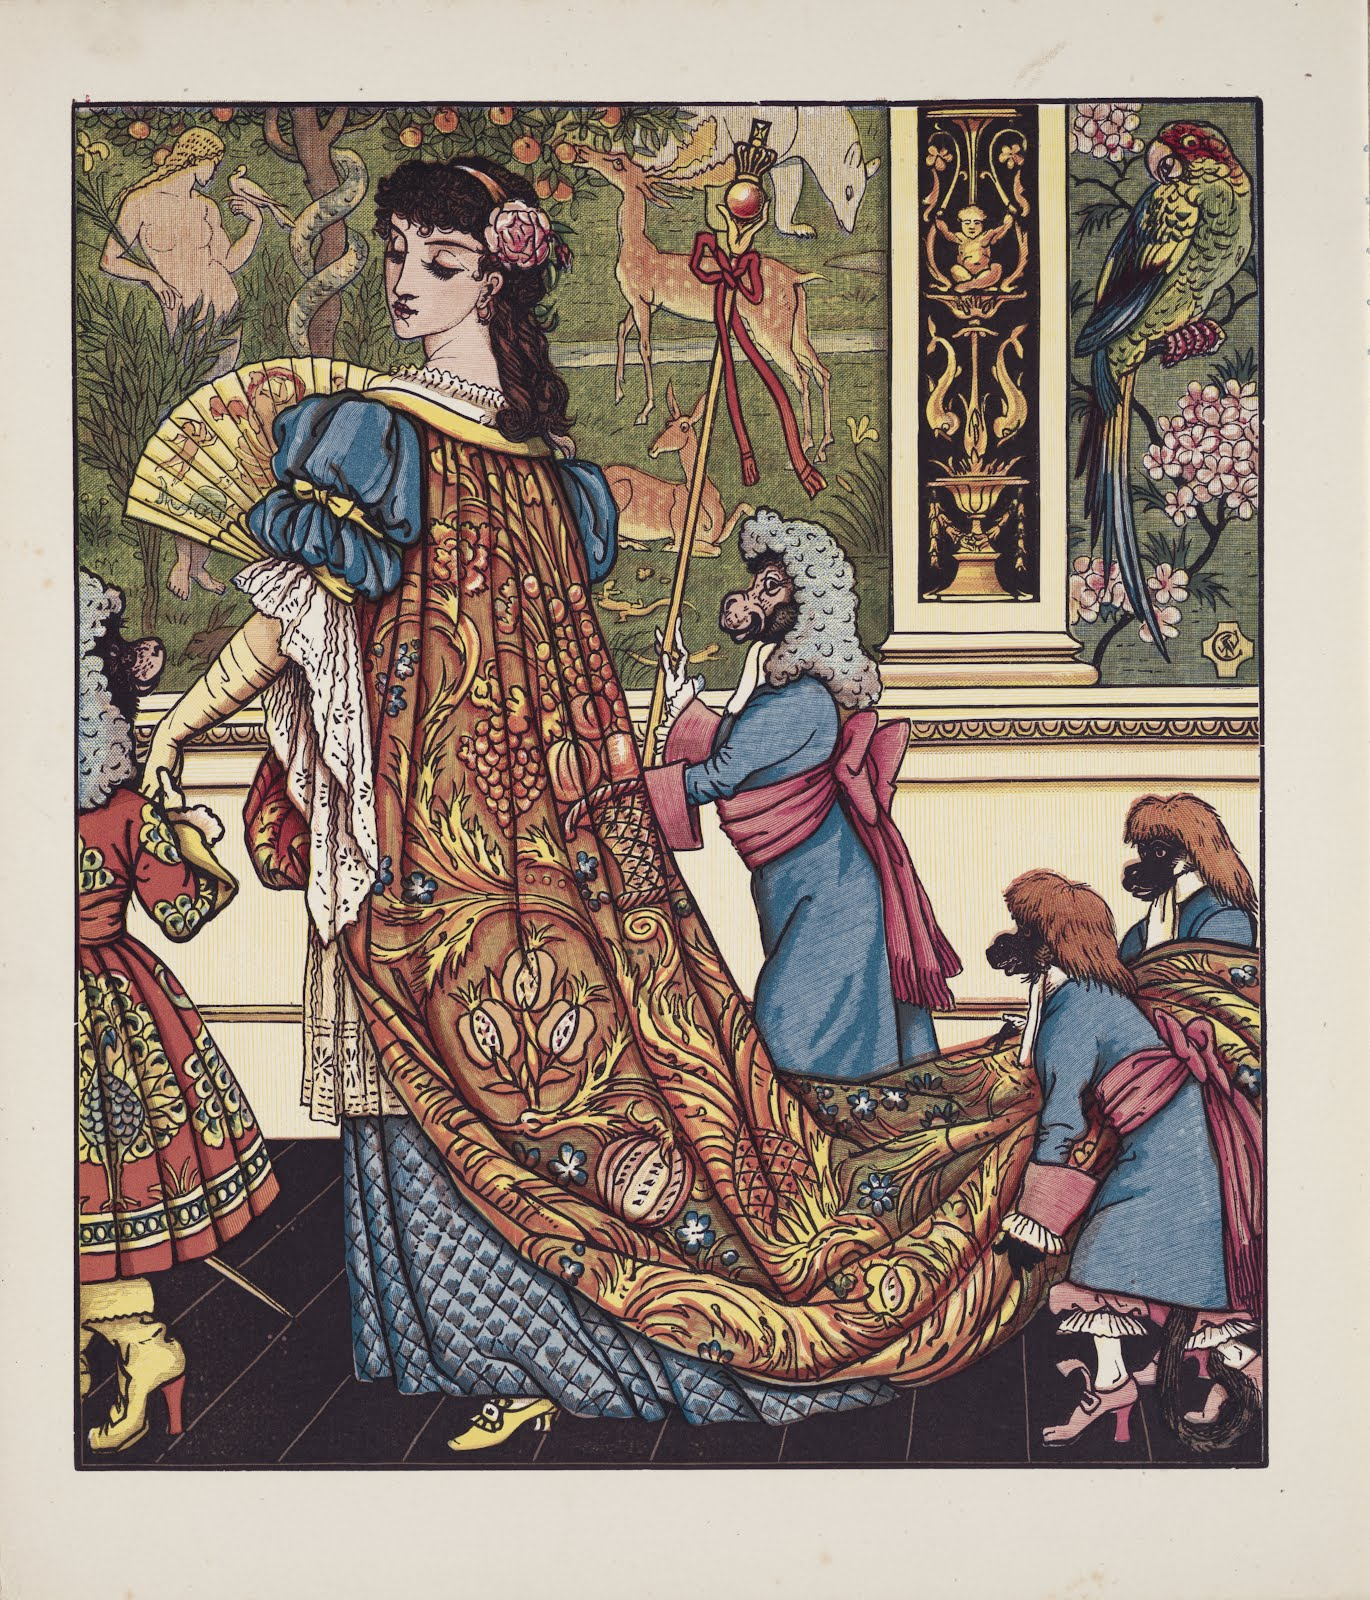 Walter Crane 'Beauty and the Beast' wearing a Morris-like print, and a medieval scene, so emblematic of the Pre-Raphaelites, in the background